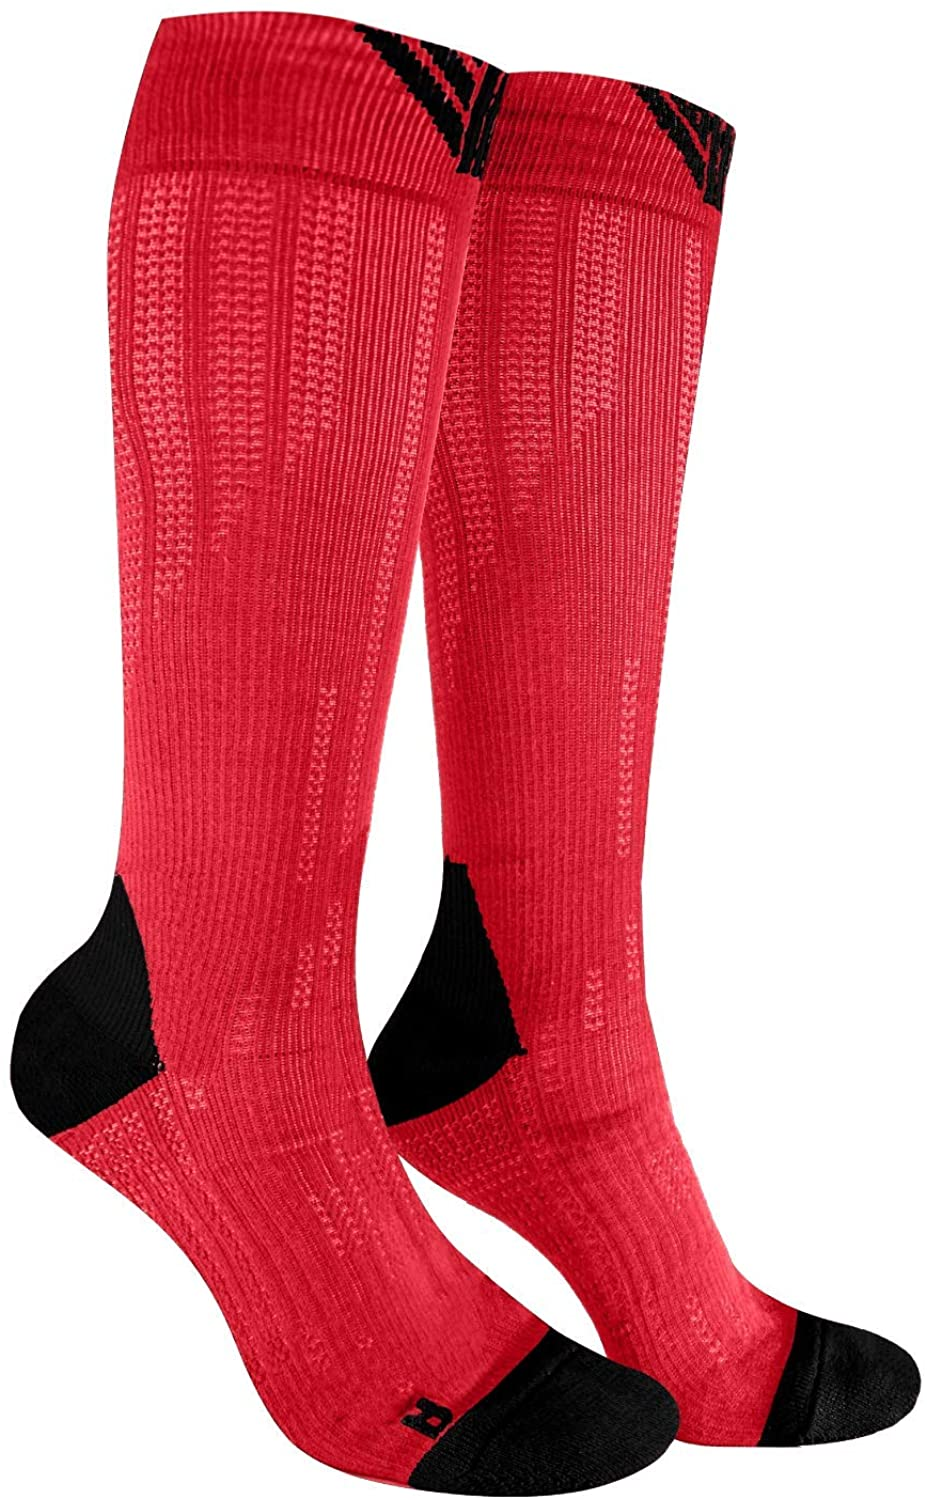 Again 1231 Colorful 3D Compression Cushion Knee High Socks 3D Knit Technology